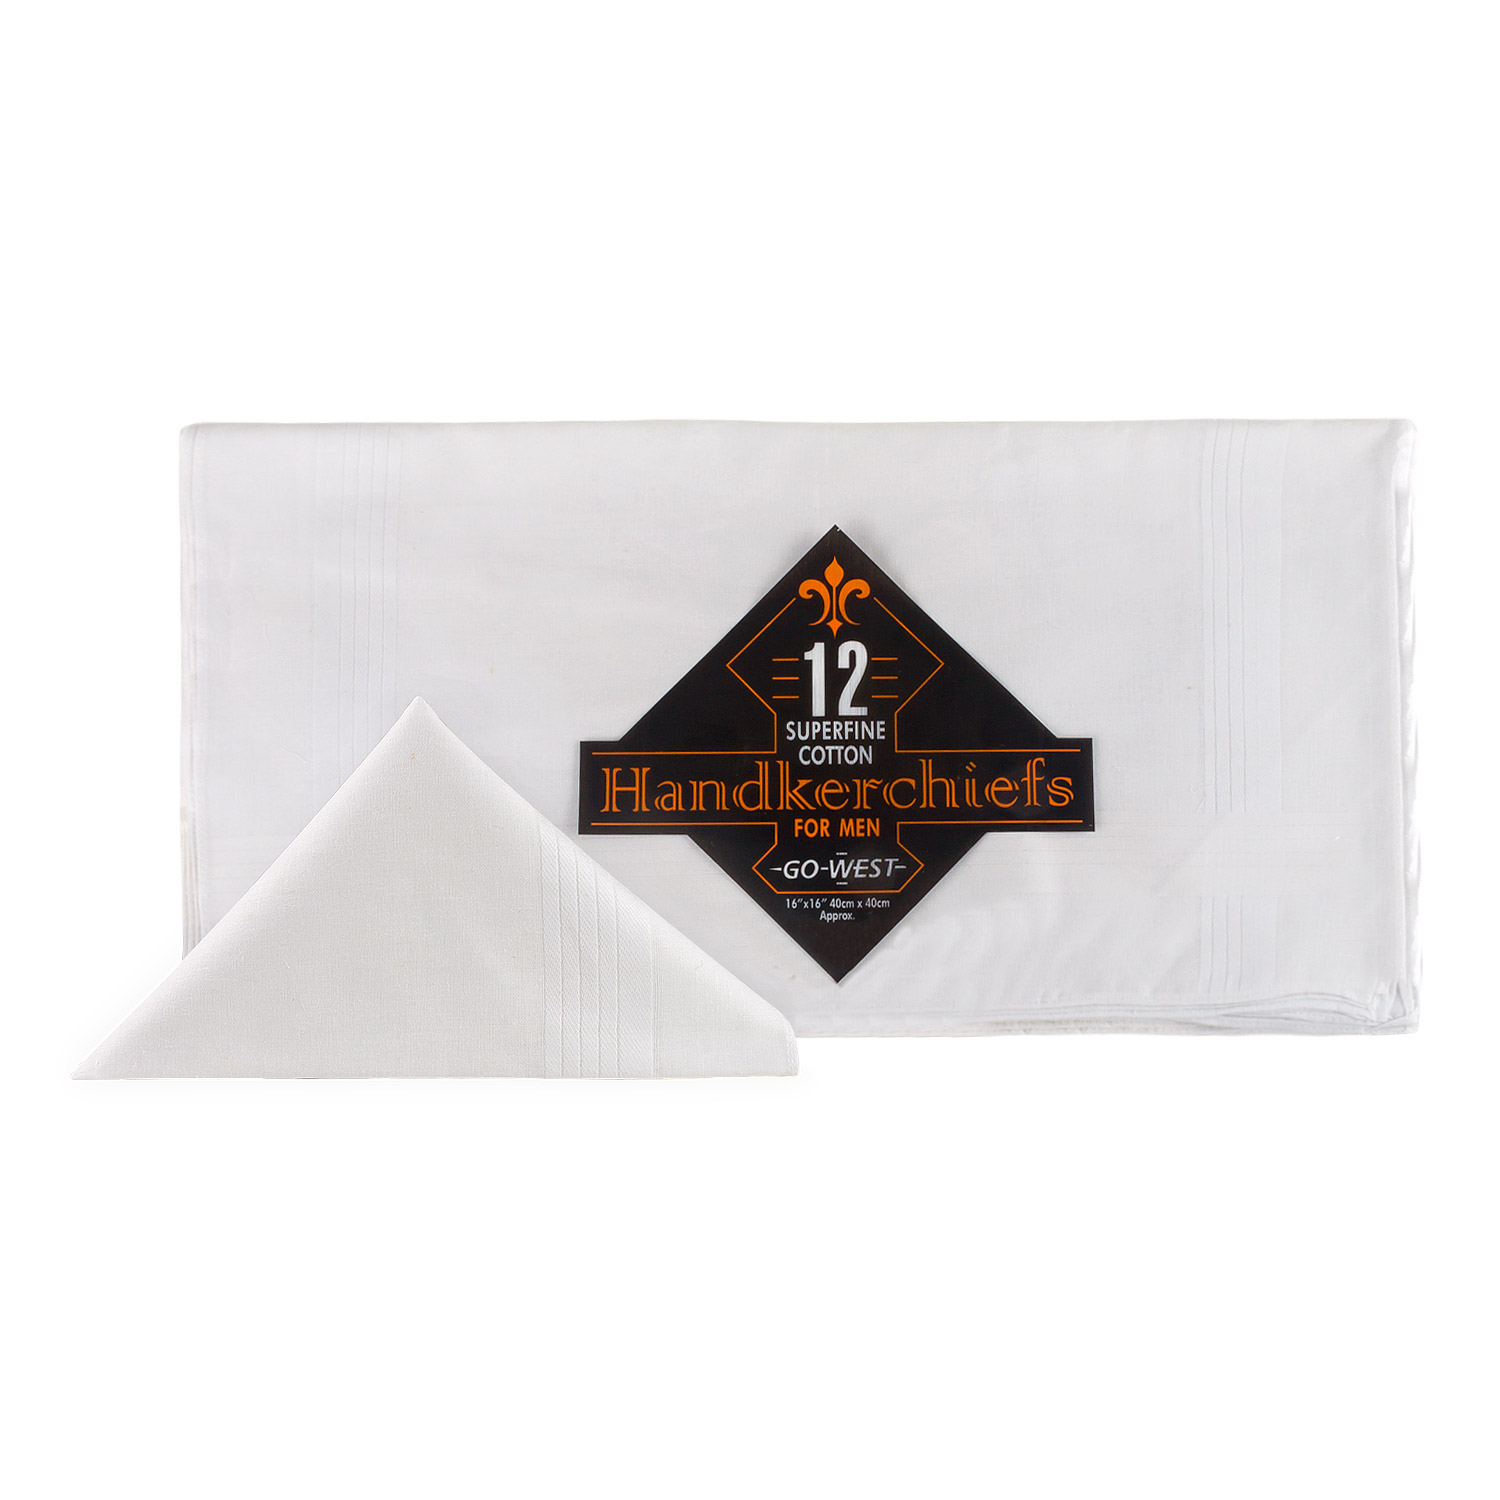 Men's Superfine Woven Hankerchiefs